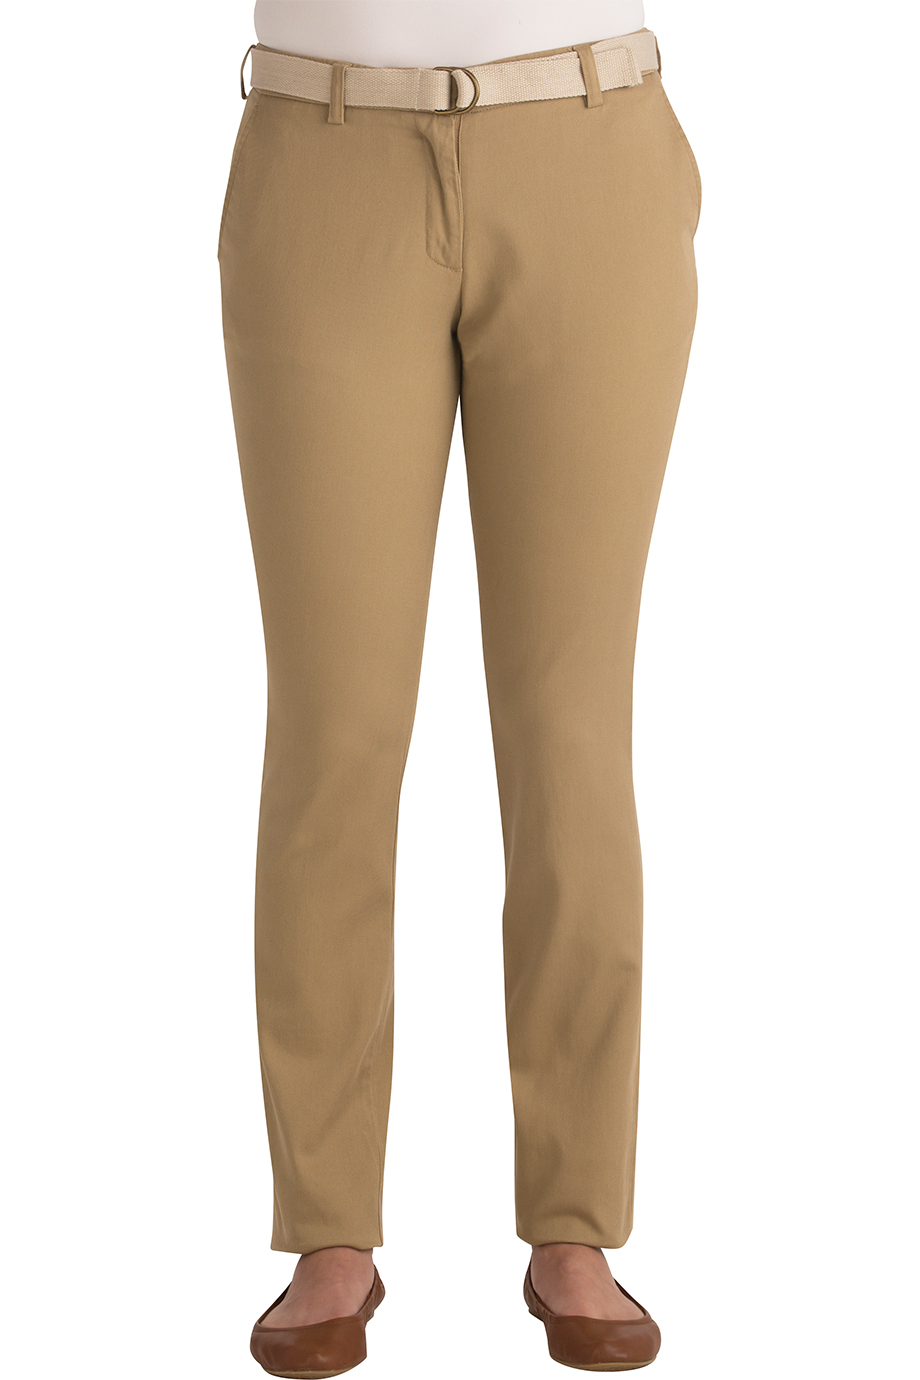 COMFORT STRETCH SLIM CHINO PANT